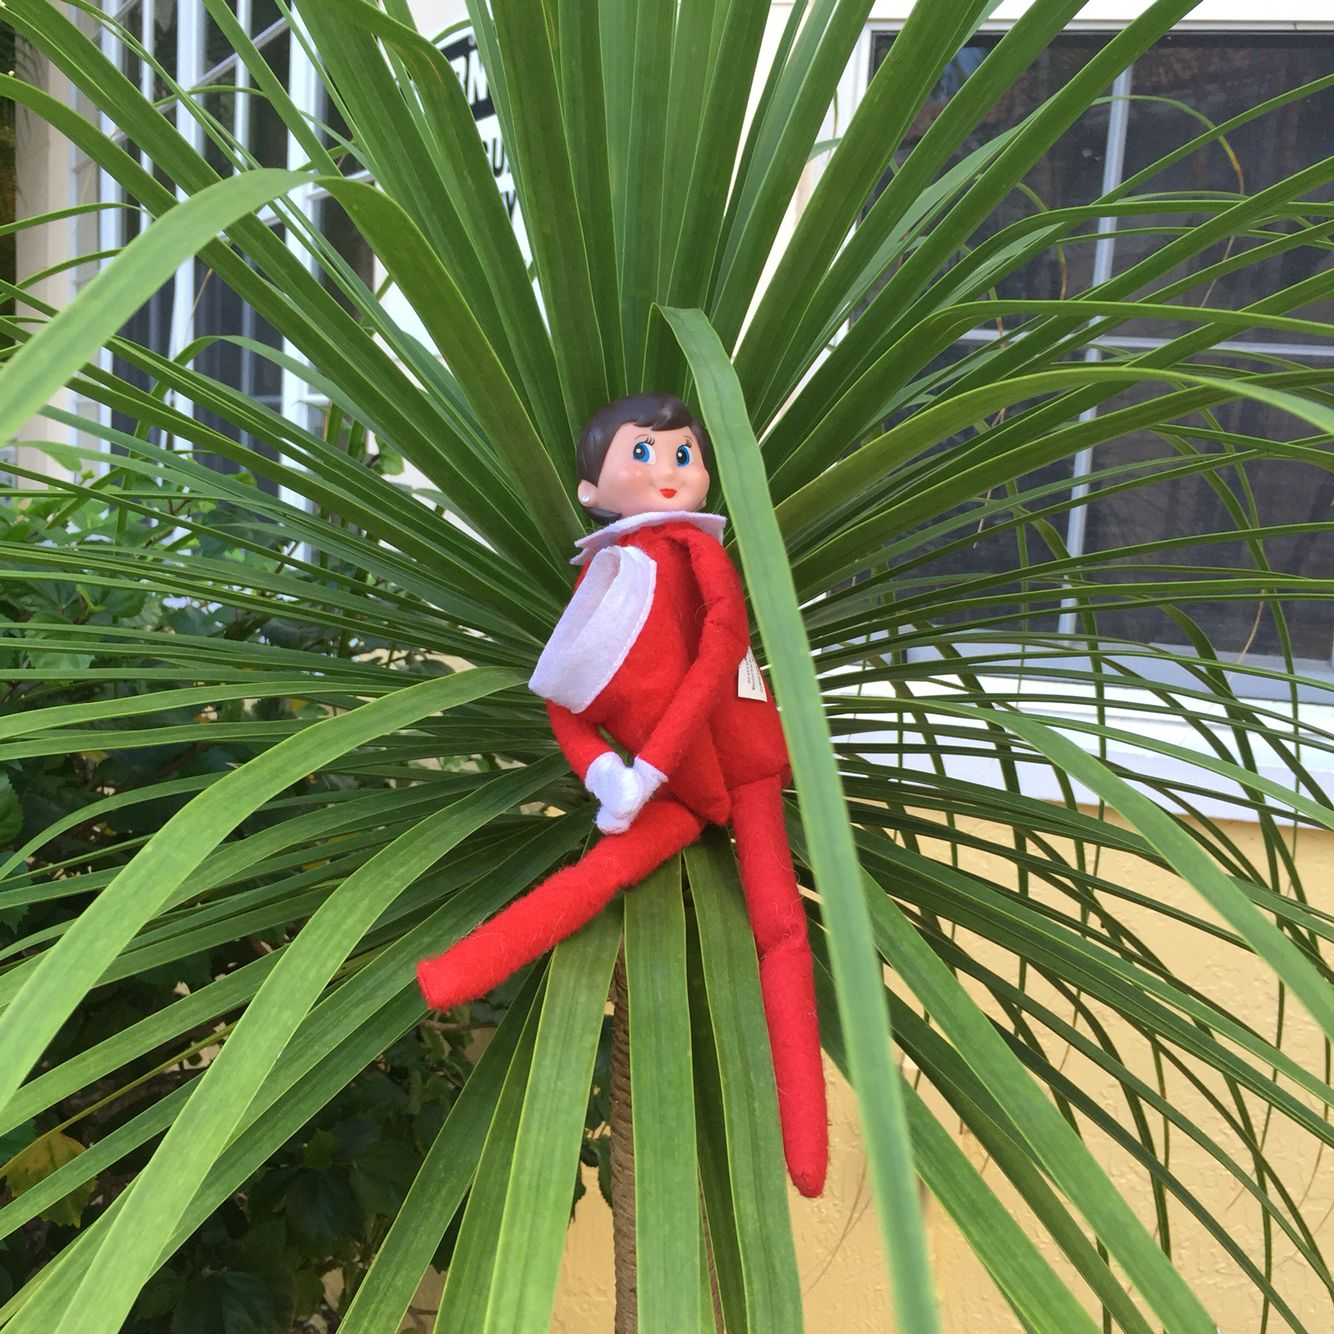 Elf on the shelf in the palms